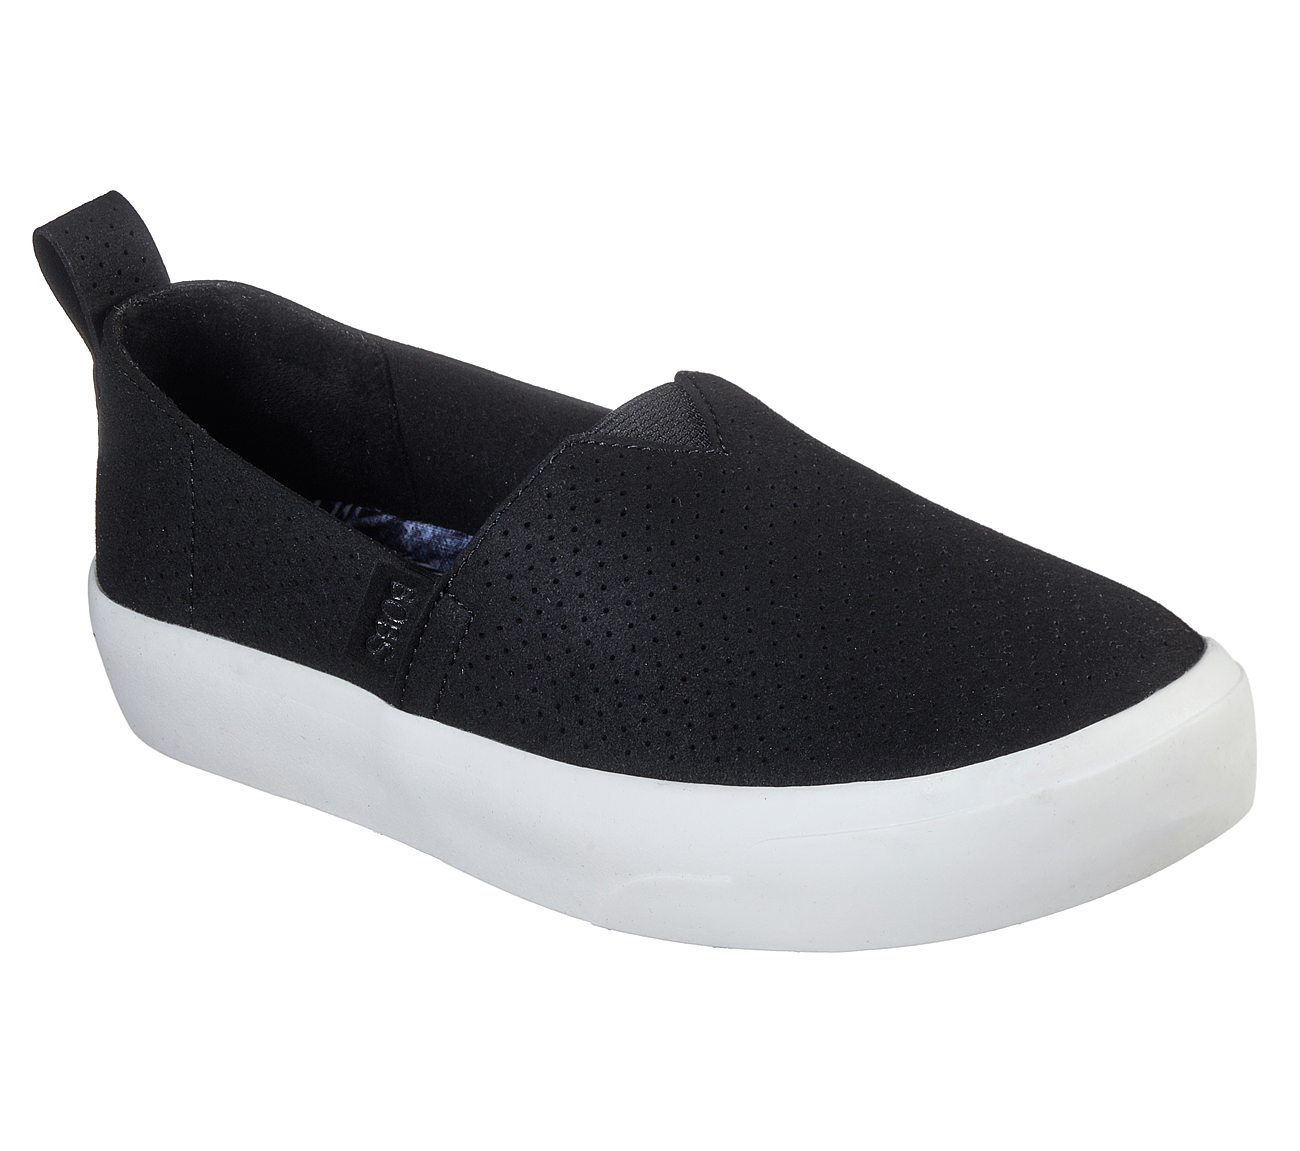 SKECHERS BOBS Cloudy - City Girl BOBS Shoes